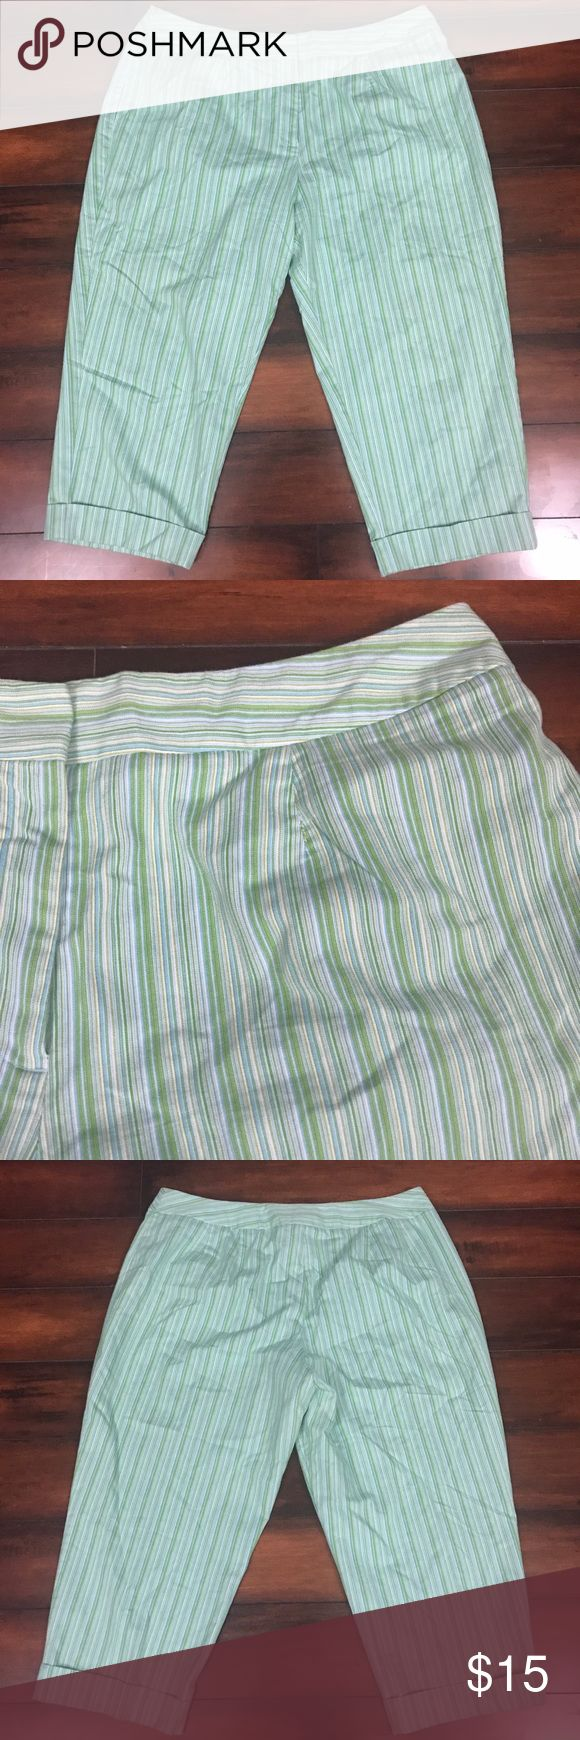 "Studio Works Woman Capri Pants Size 20W Women's plus size 20W green/blue striped Studio Works Woman cropped pants/capris. 71% cotton, 27% polyester, 2% spandex.   Measurements:  Inseam: 22"" Length: 32"" Pants Ankle & Cropped"